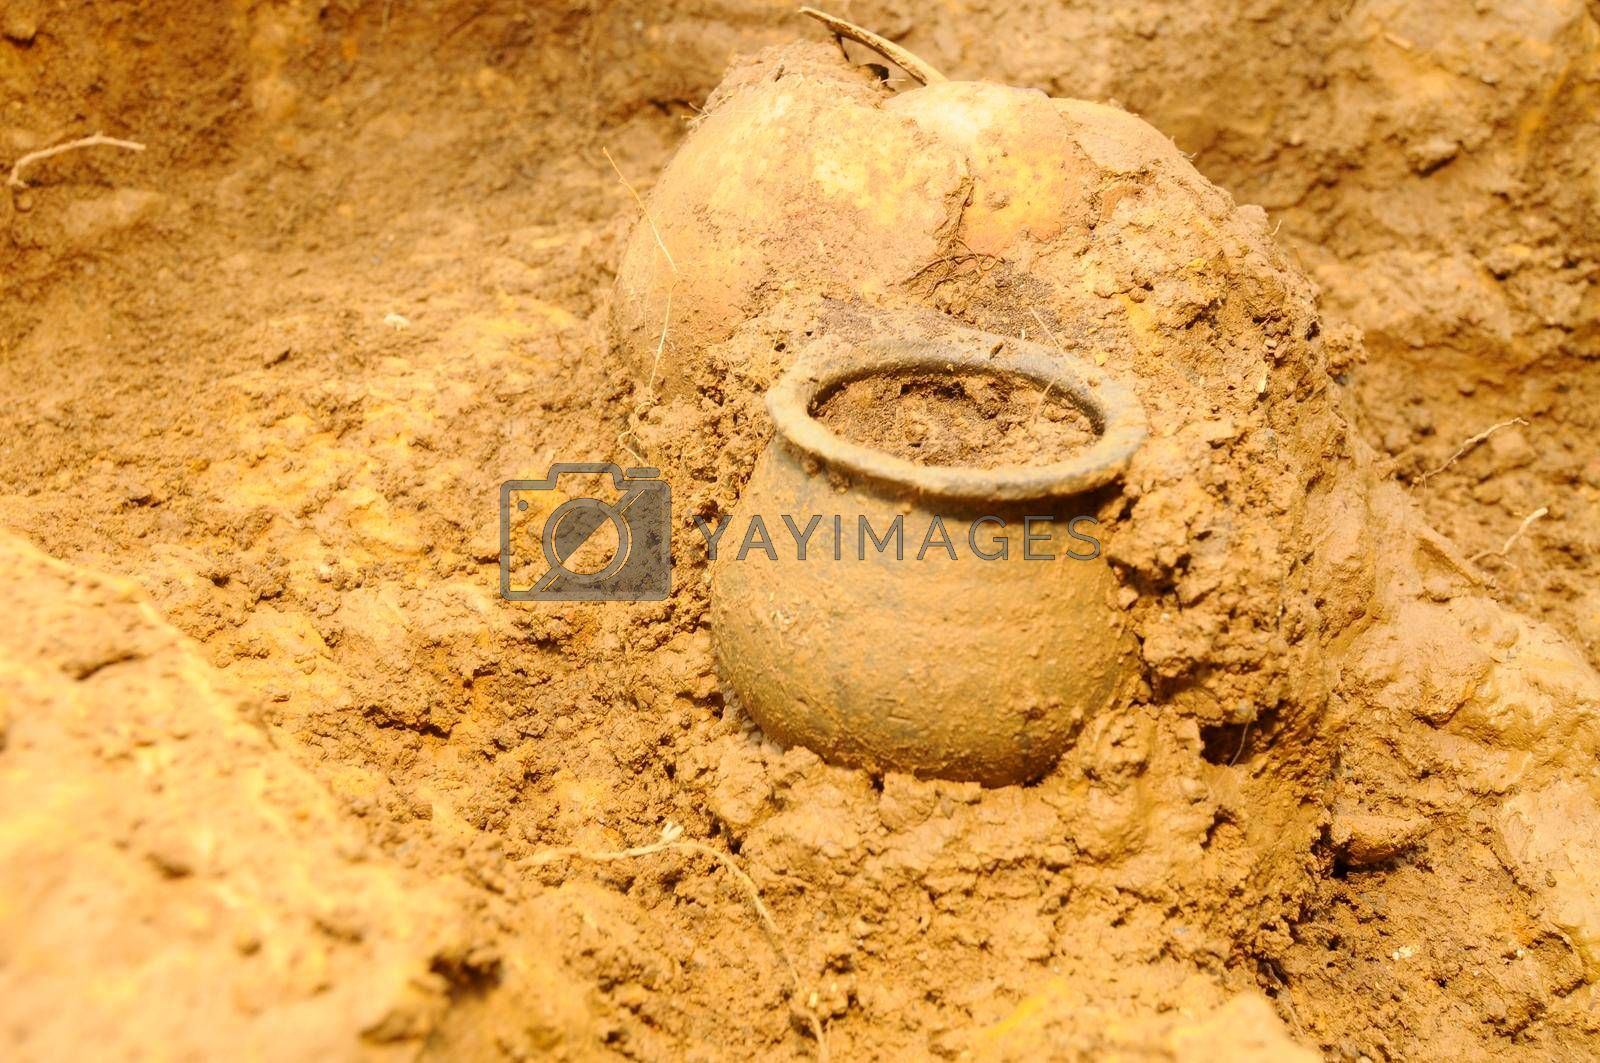 archeological excavation and digging in the field, research and history